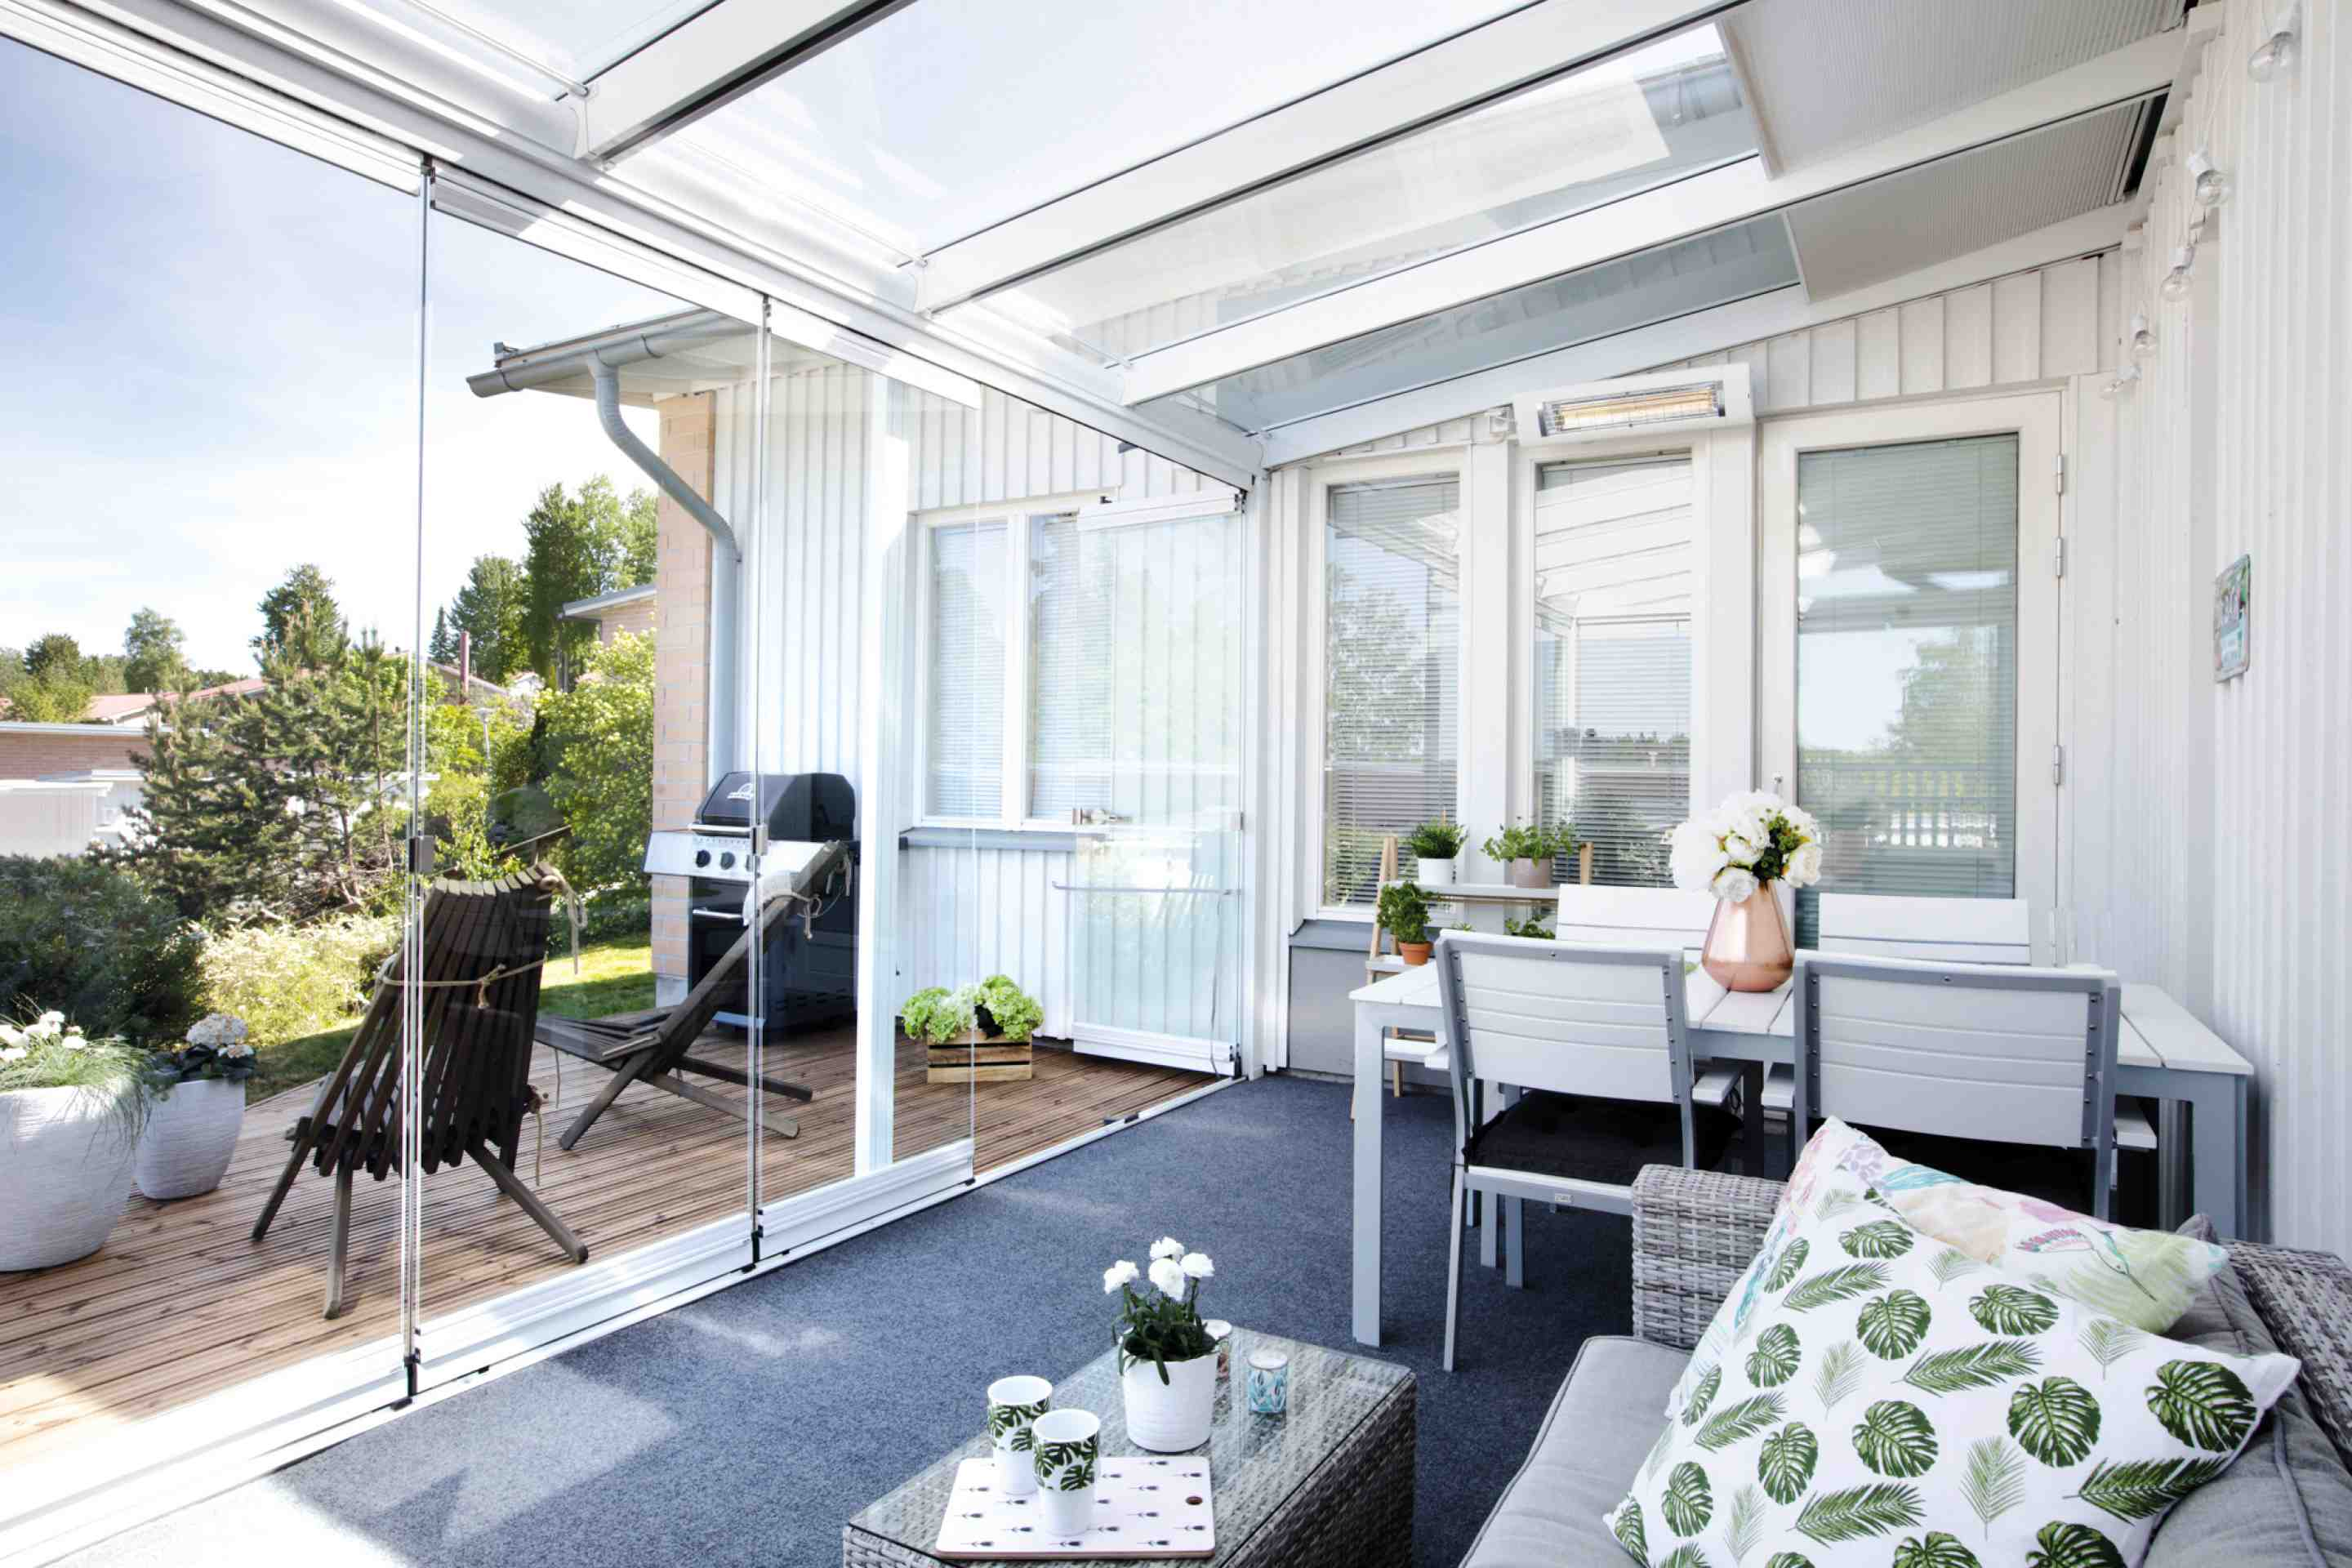 sunroom addition, sunroom, sunroom companies in buffalo, buffalo sunrooms, sunroom ideas, sunroom inspiration, all season sunroom, four season sunroom, build a deck enclosure, sunroom enclosure, porch enclosure, winter sunroom, buffalo sunrooms, new york sunroom companies